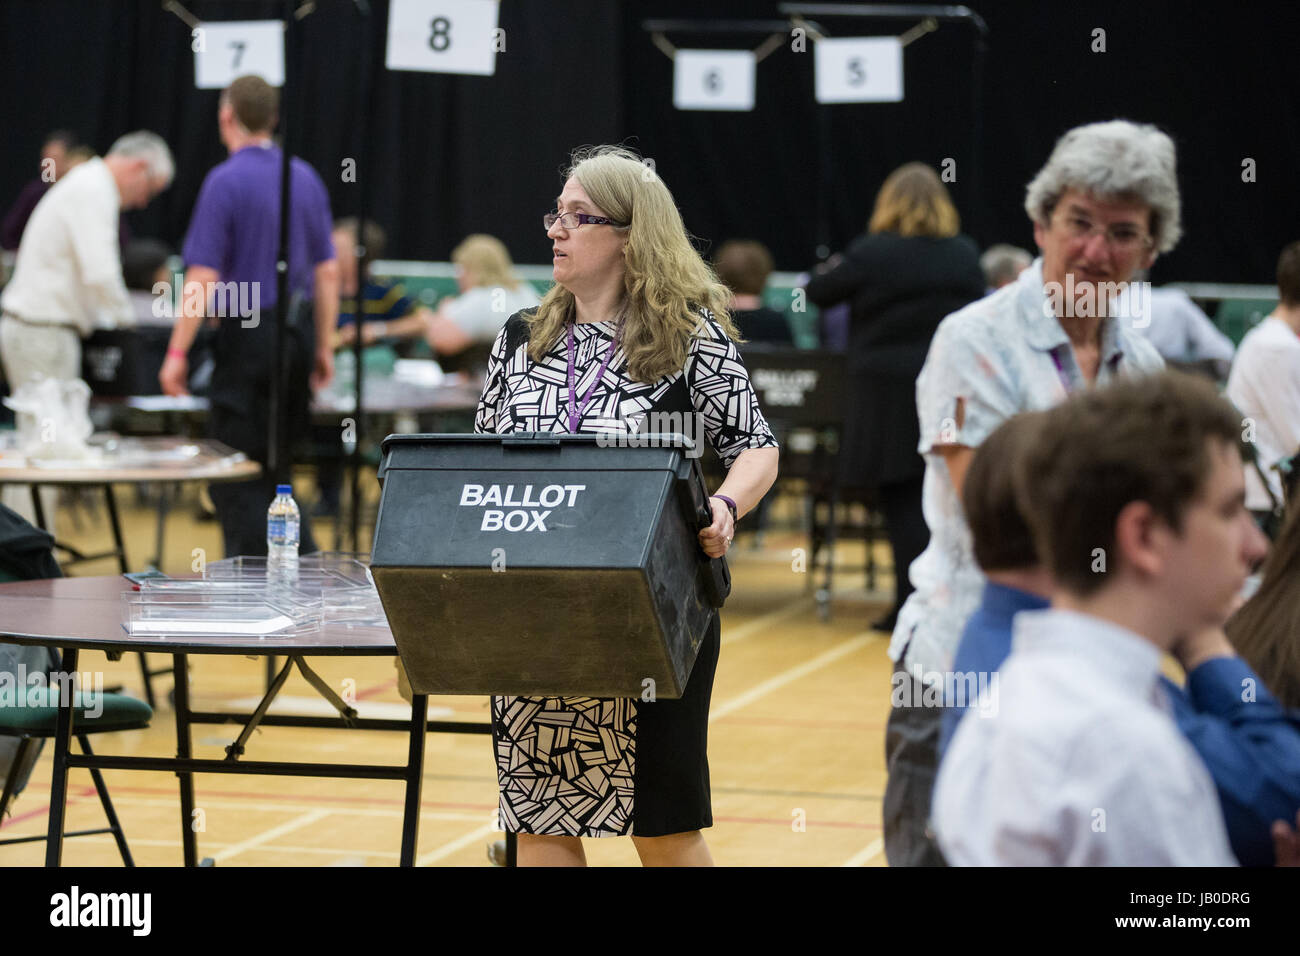 Maidenhead, UK. 8th June, 2017. The first ballot boxes containing postal votes arrive at the count in Prime Minister - Stock Image